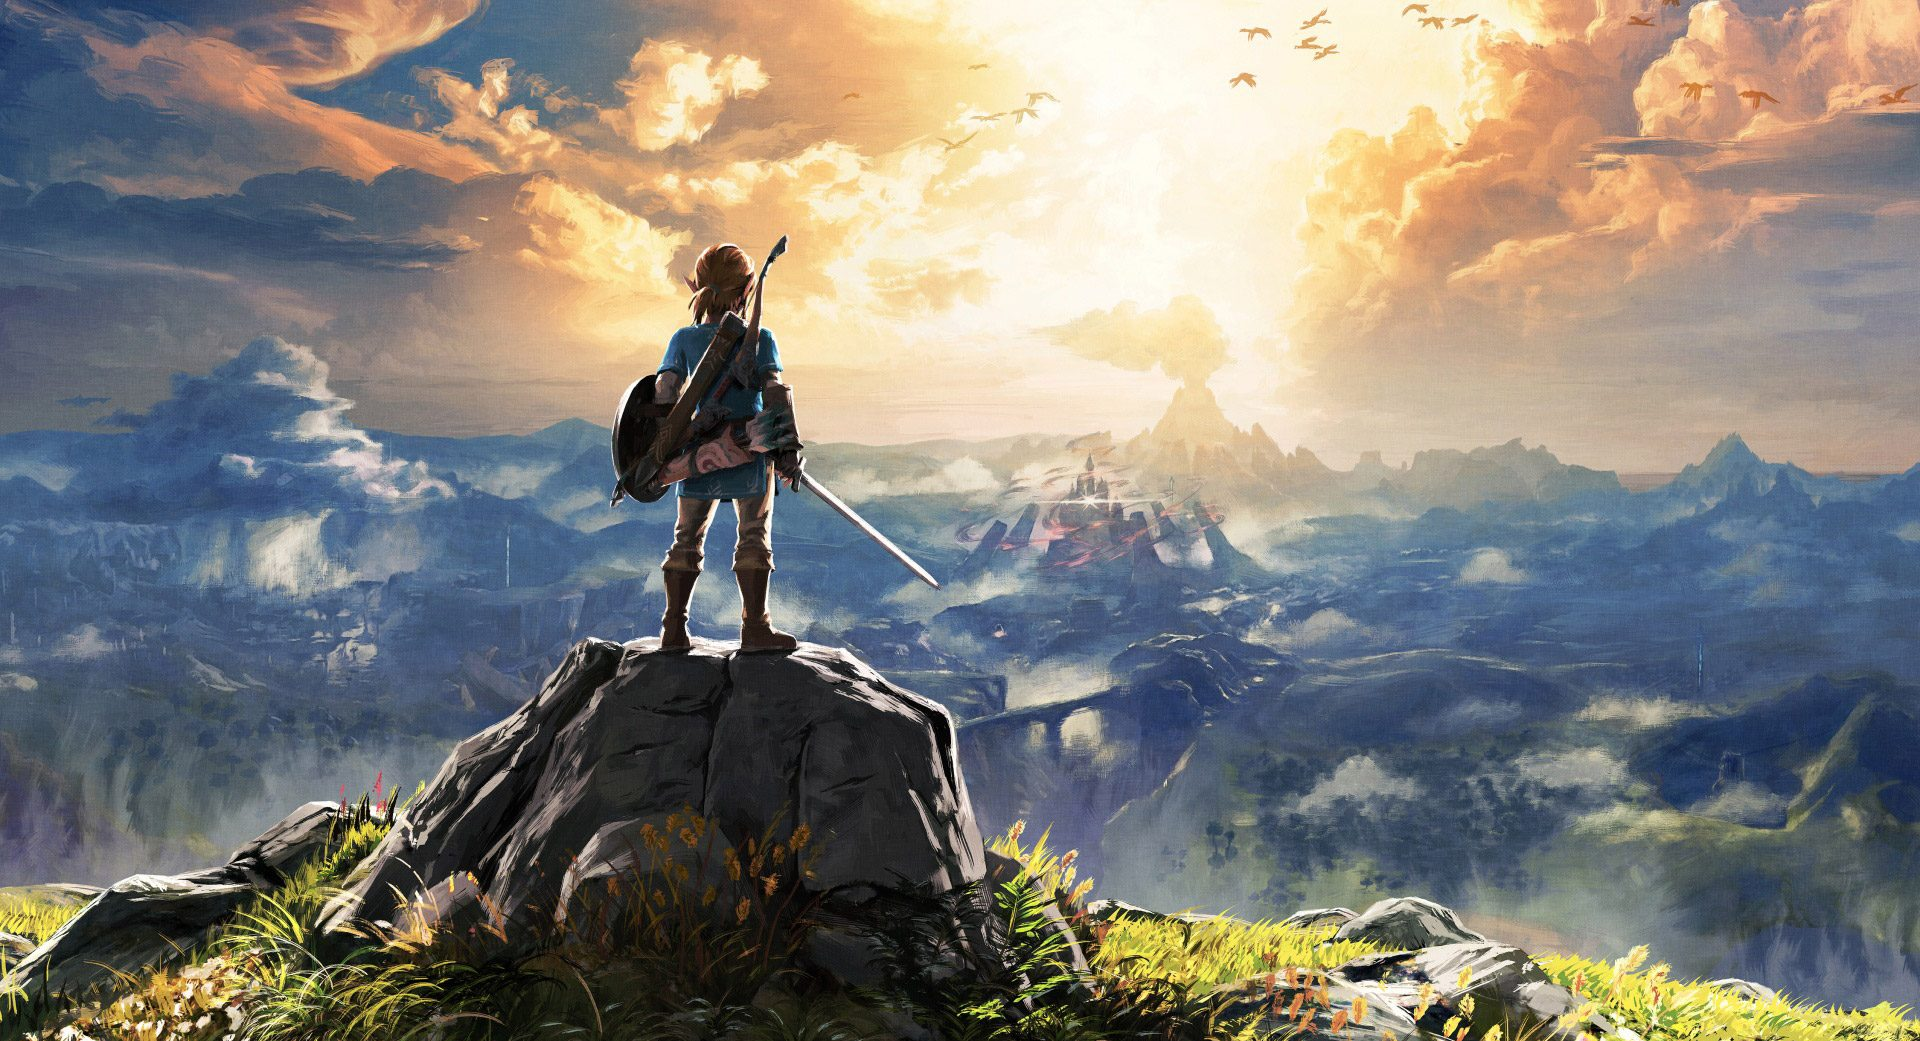 The Legend of Zelda: Breath of the Wild complete review